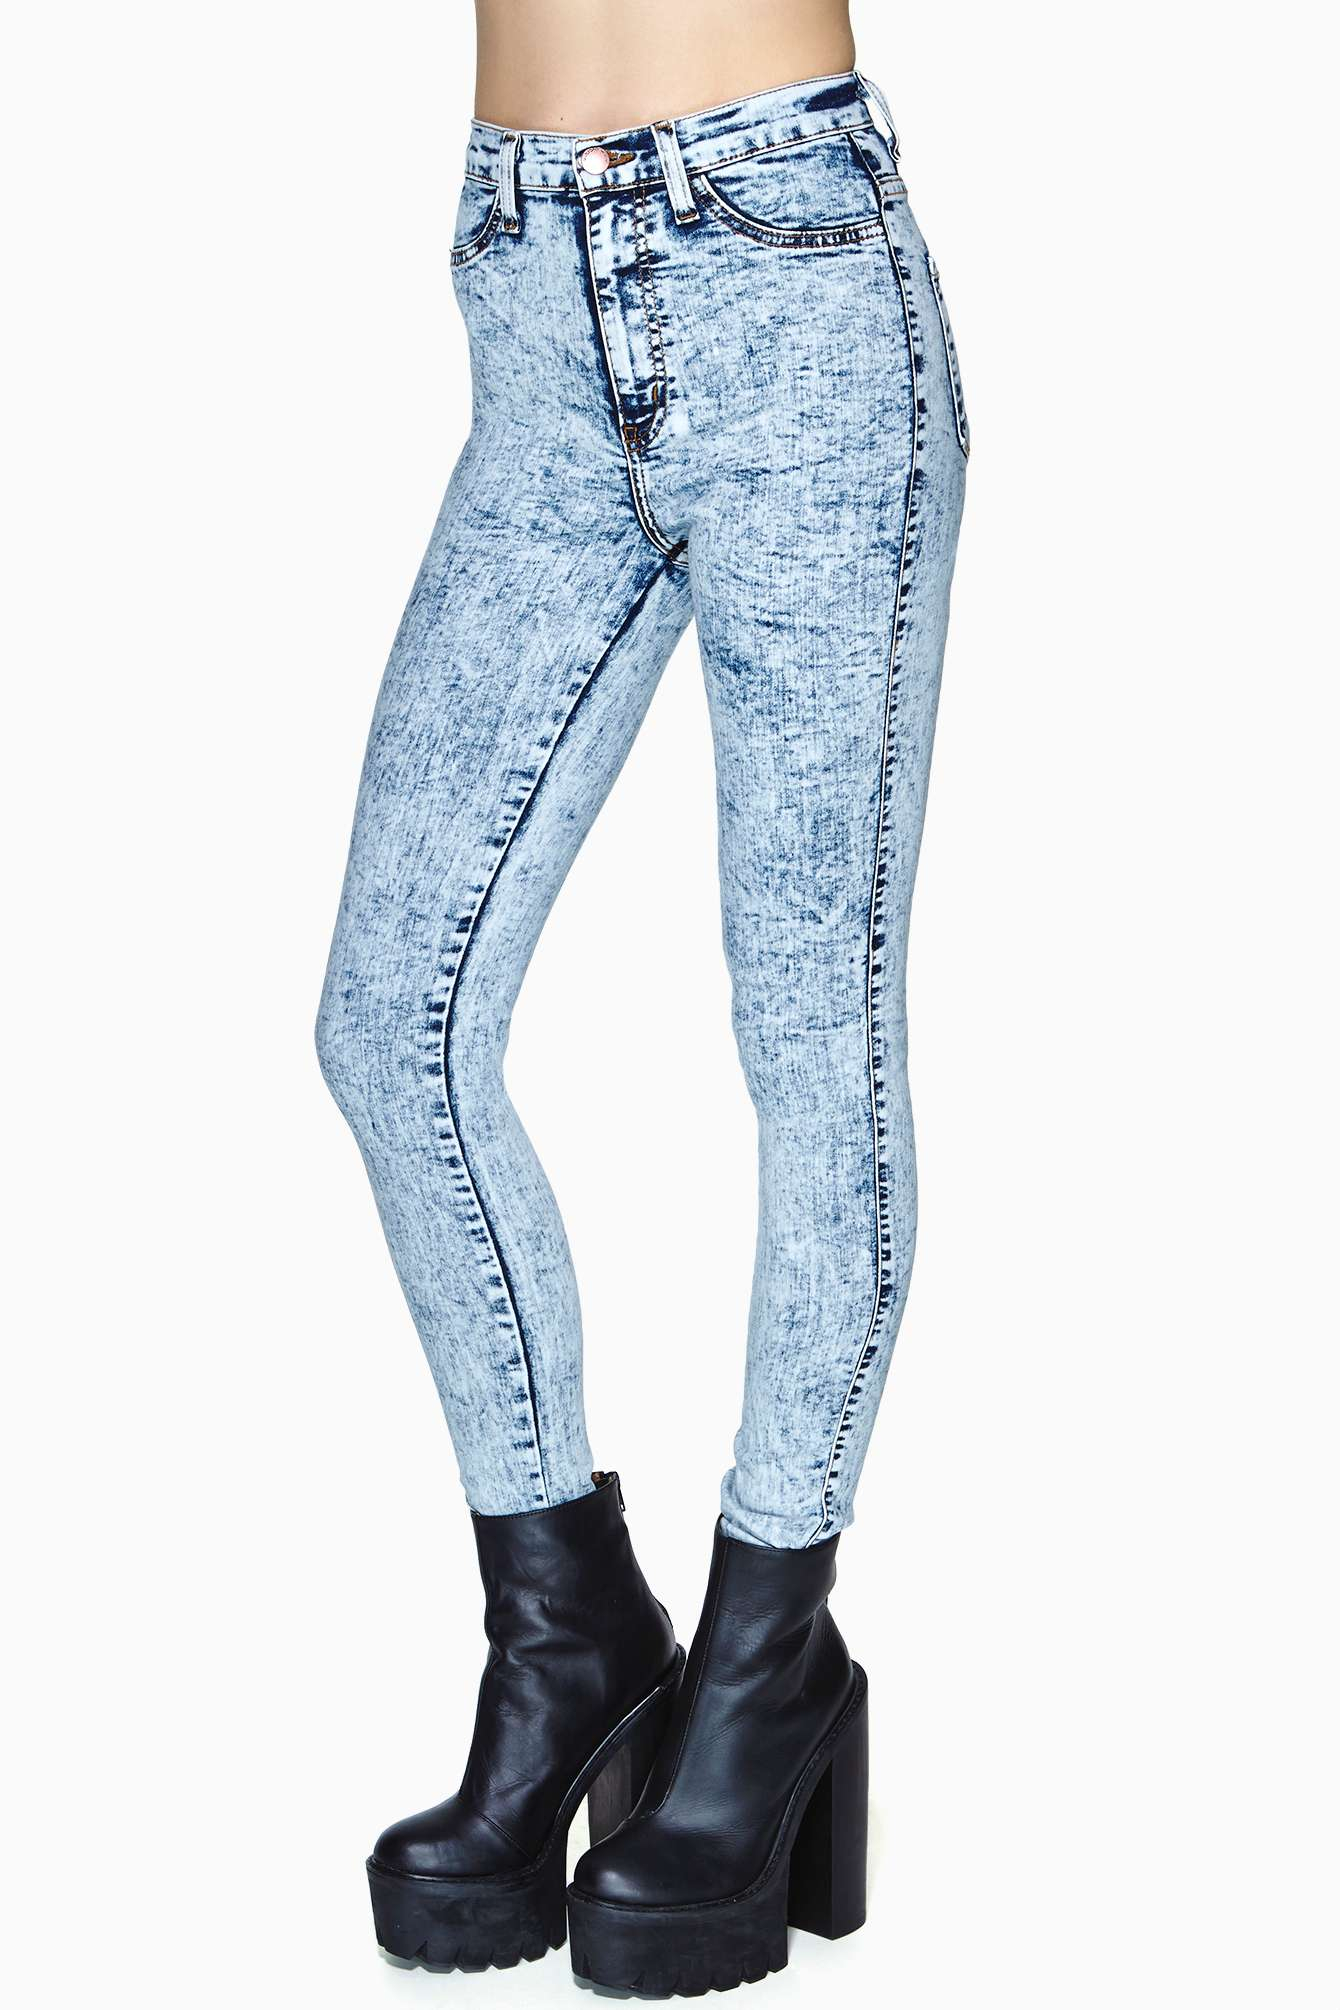 Blue And White Skinny Jeans - Jon Jean